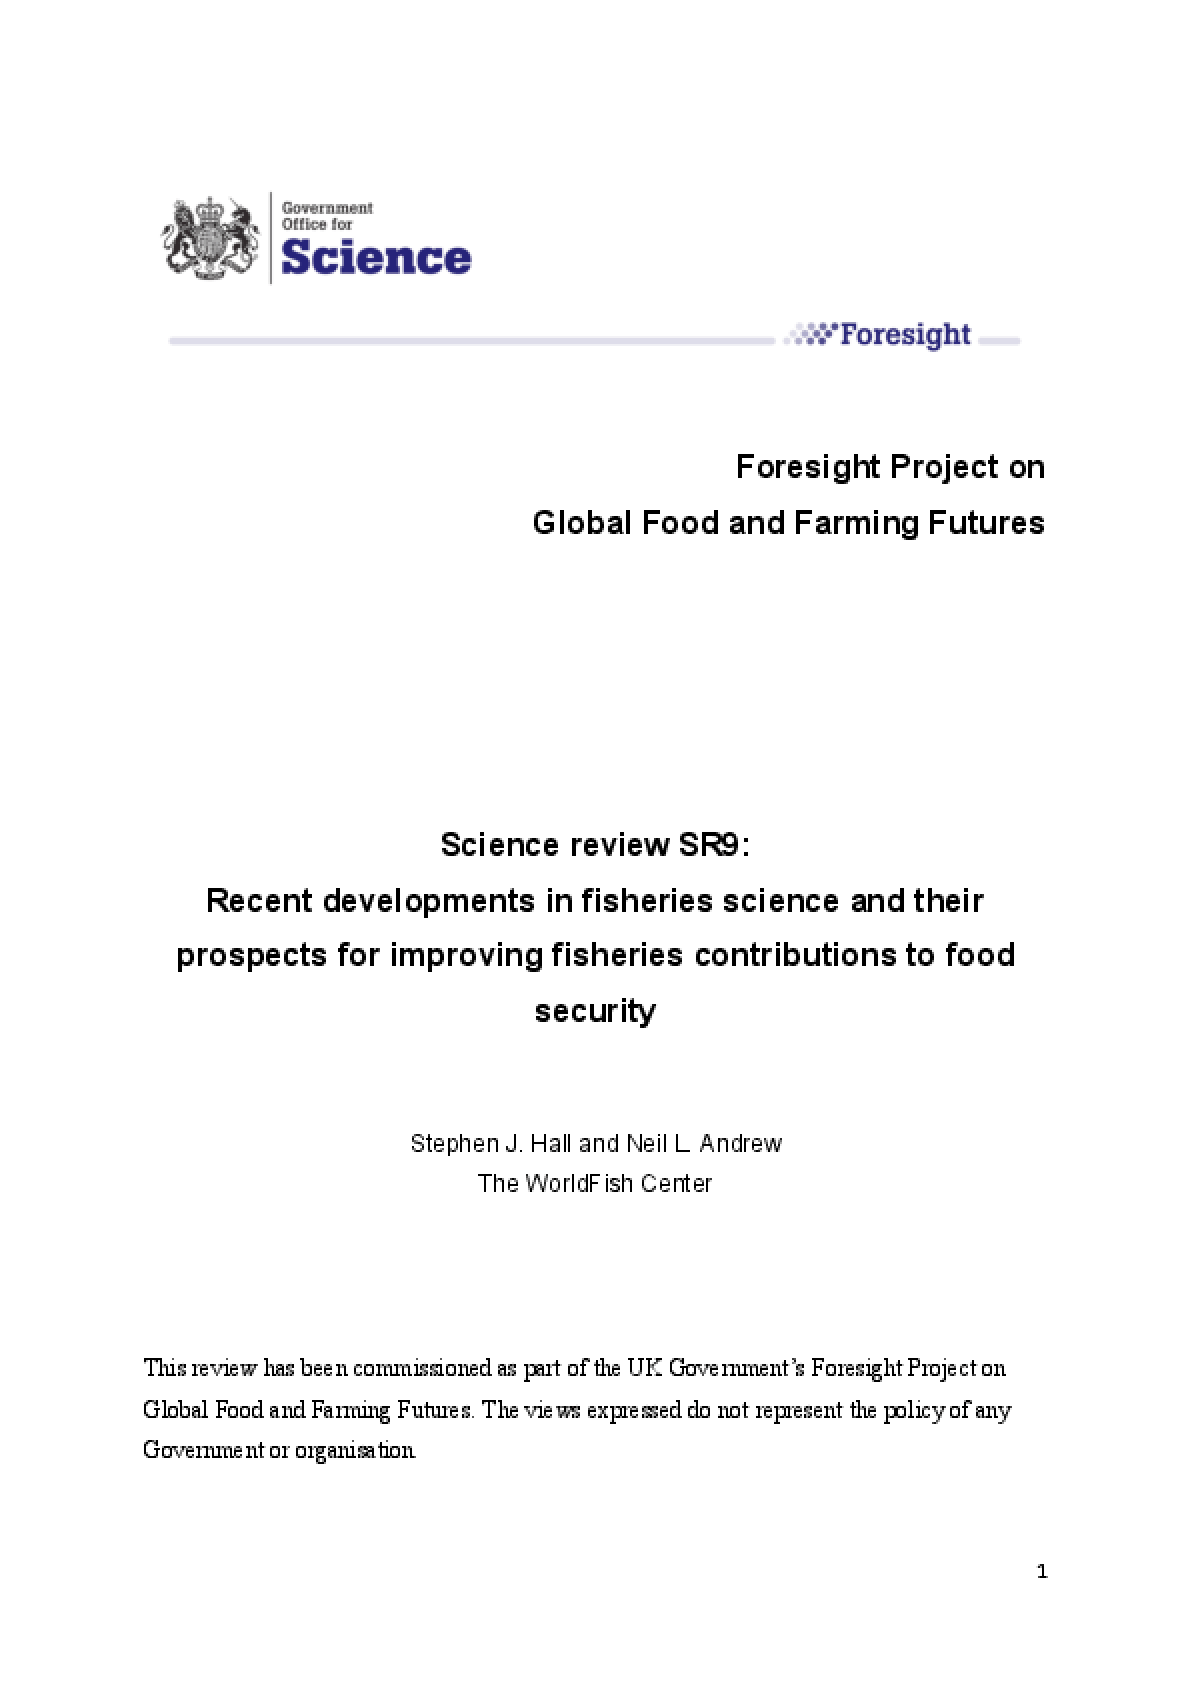 Recent Developments in Fisheries Science and Their Prospects for Improving Fisheries Contributions to Food Security